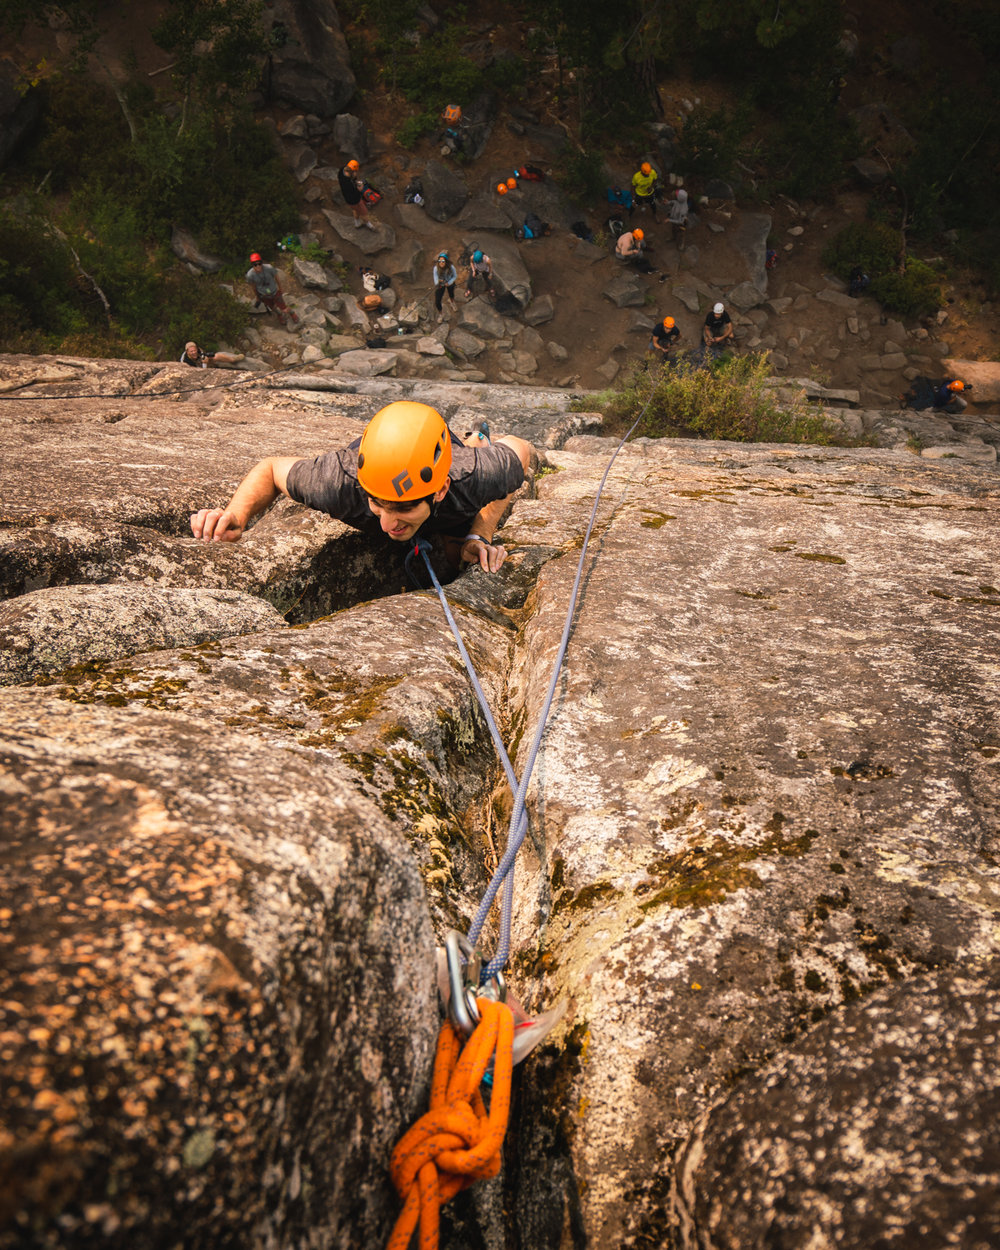 PursuitBearValley2018_ScottKranz_SMK05878 (for The Outbound Collective's Digital Use).jpg